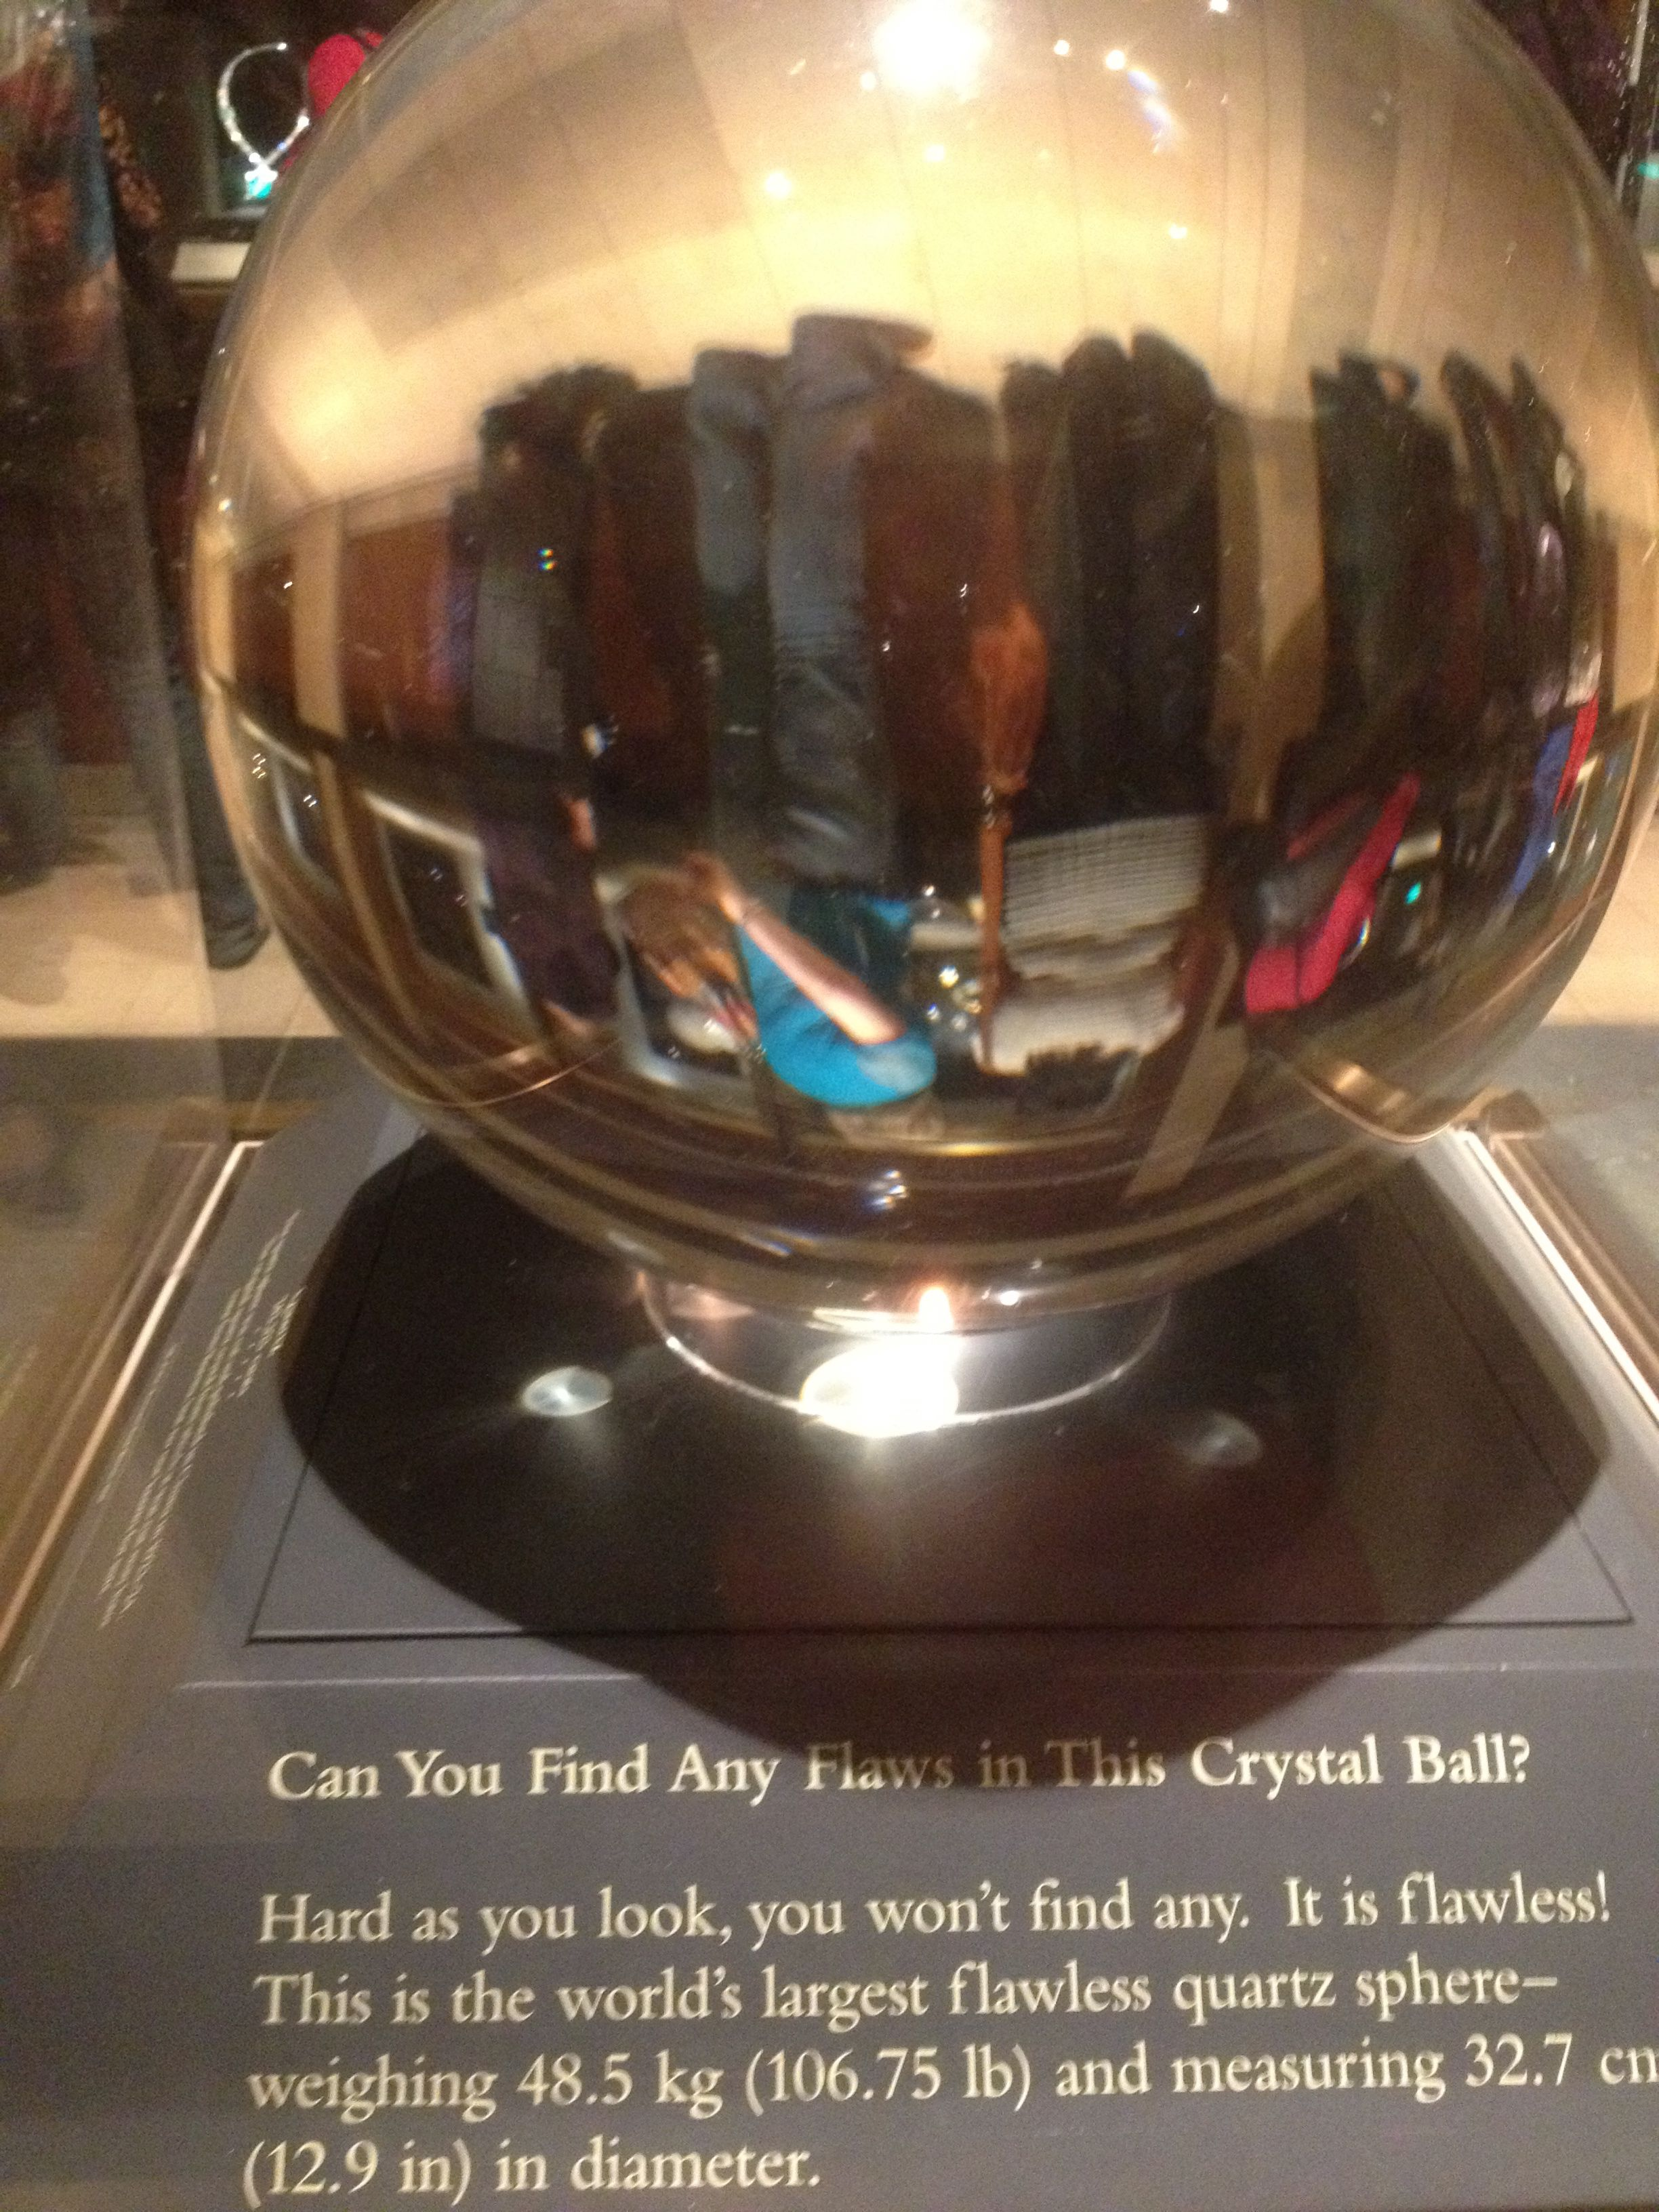 This clear crystal ball is phenomenal...flawless! This is very rare.